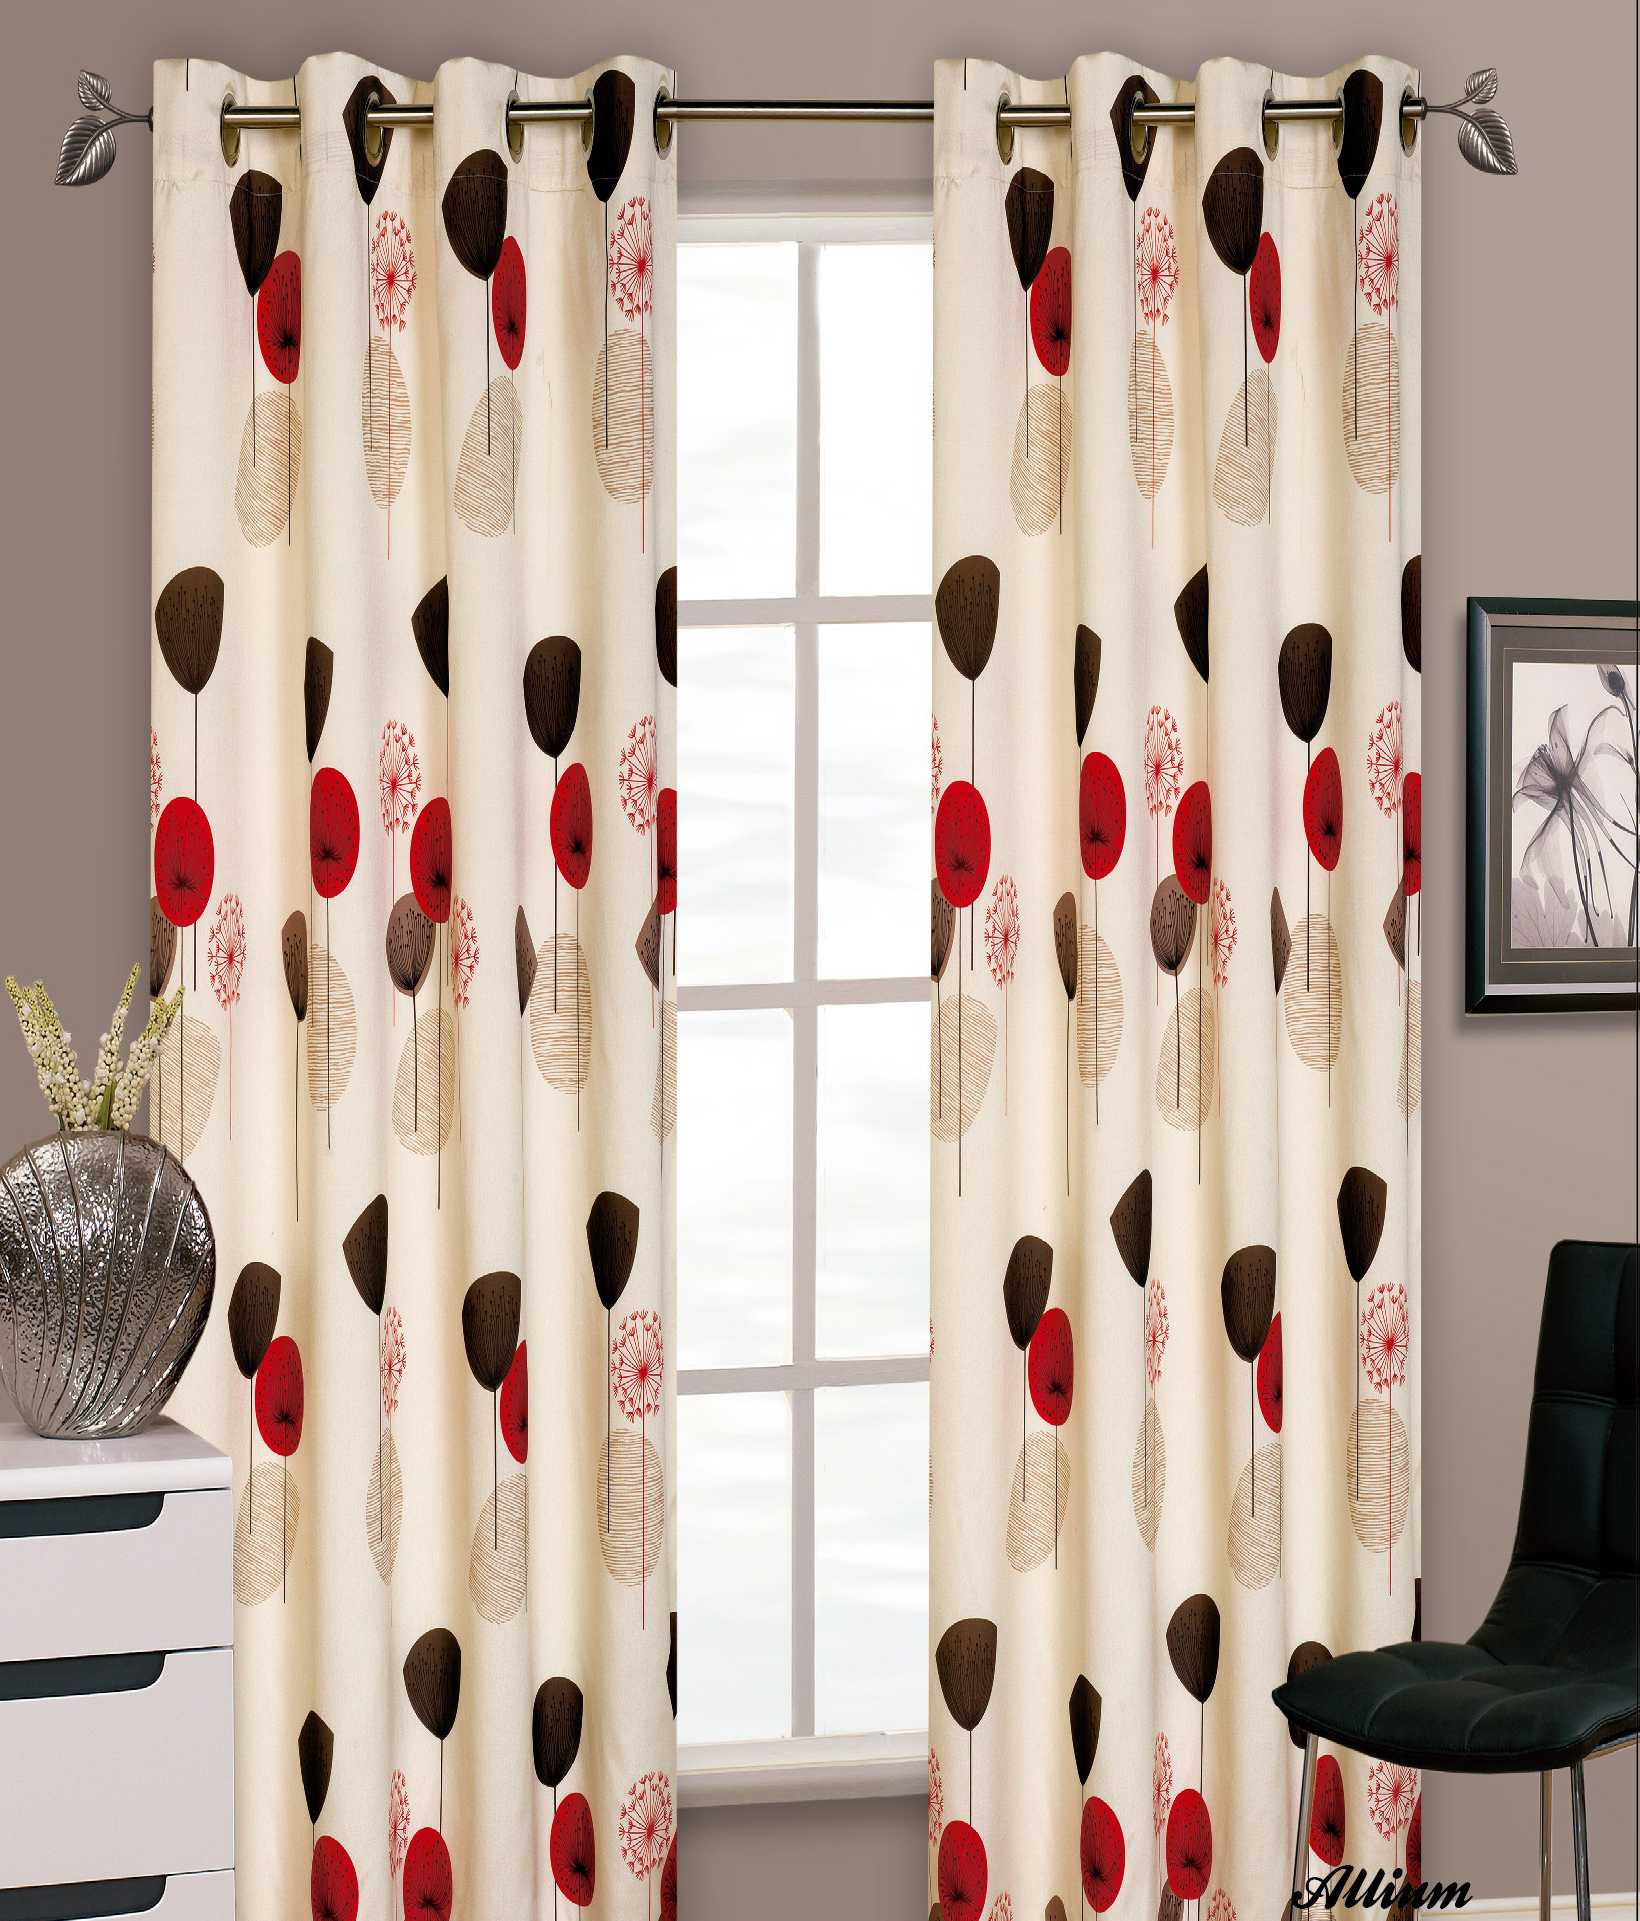 Windsor teal eyelet curtains harry corry limited - Stylish Floral Ring Top Eyelet Lined Curtains Faux Silk